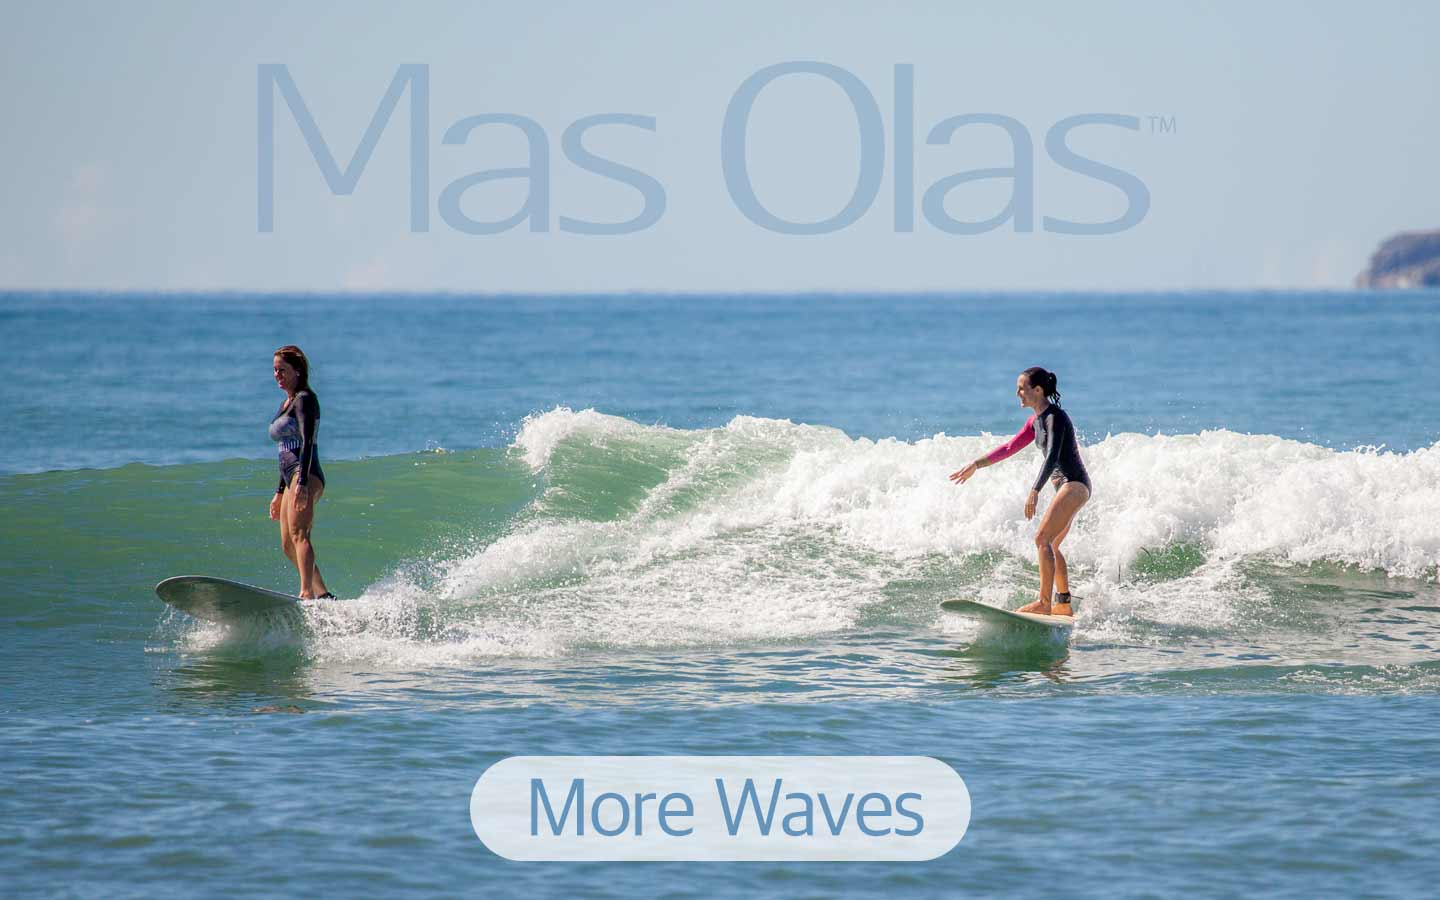 Mas Olas is More Waves